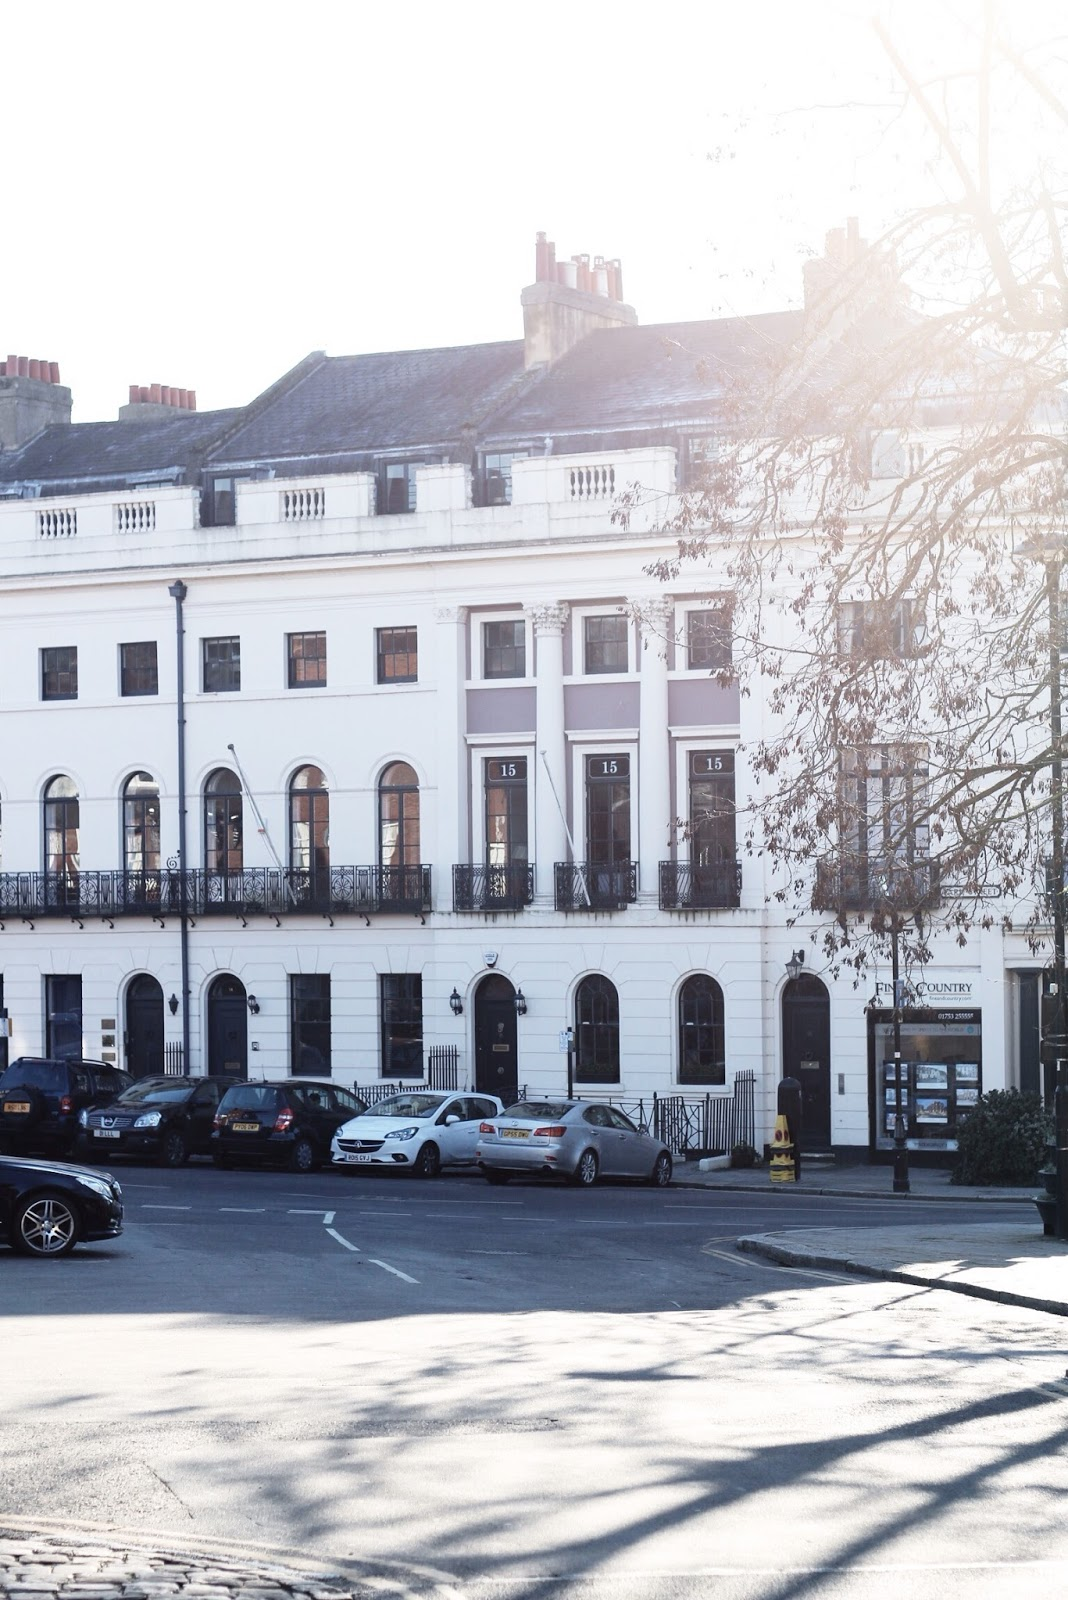 Luxurious white houses in Windsor